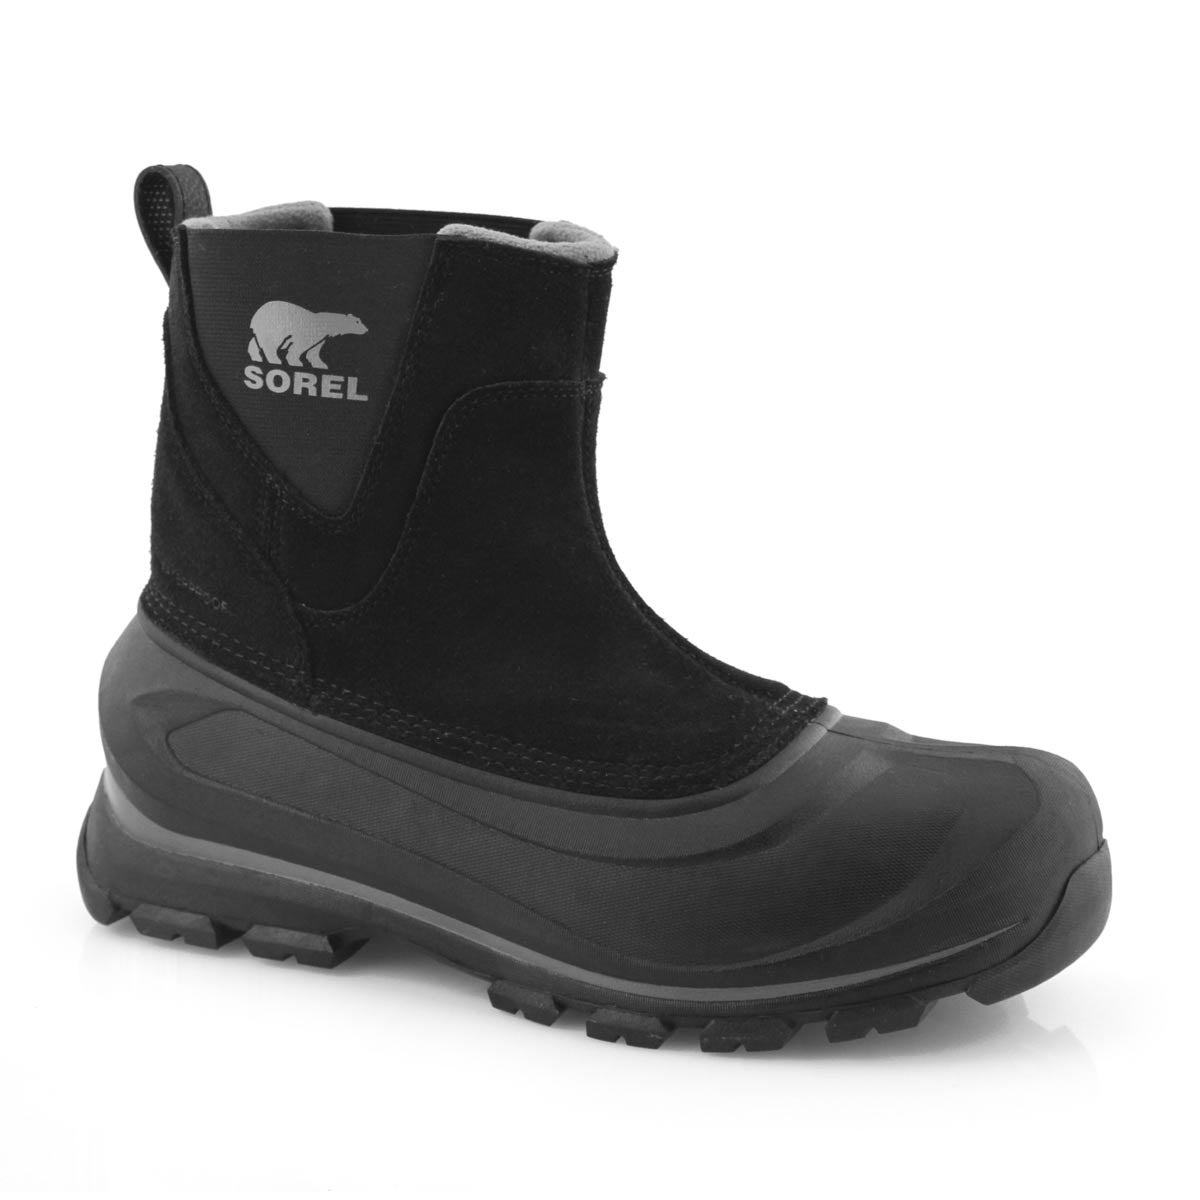 Mns Buxton Pull On black winter boot